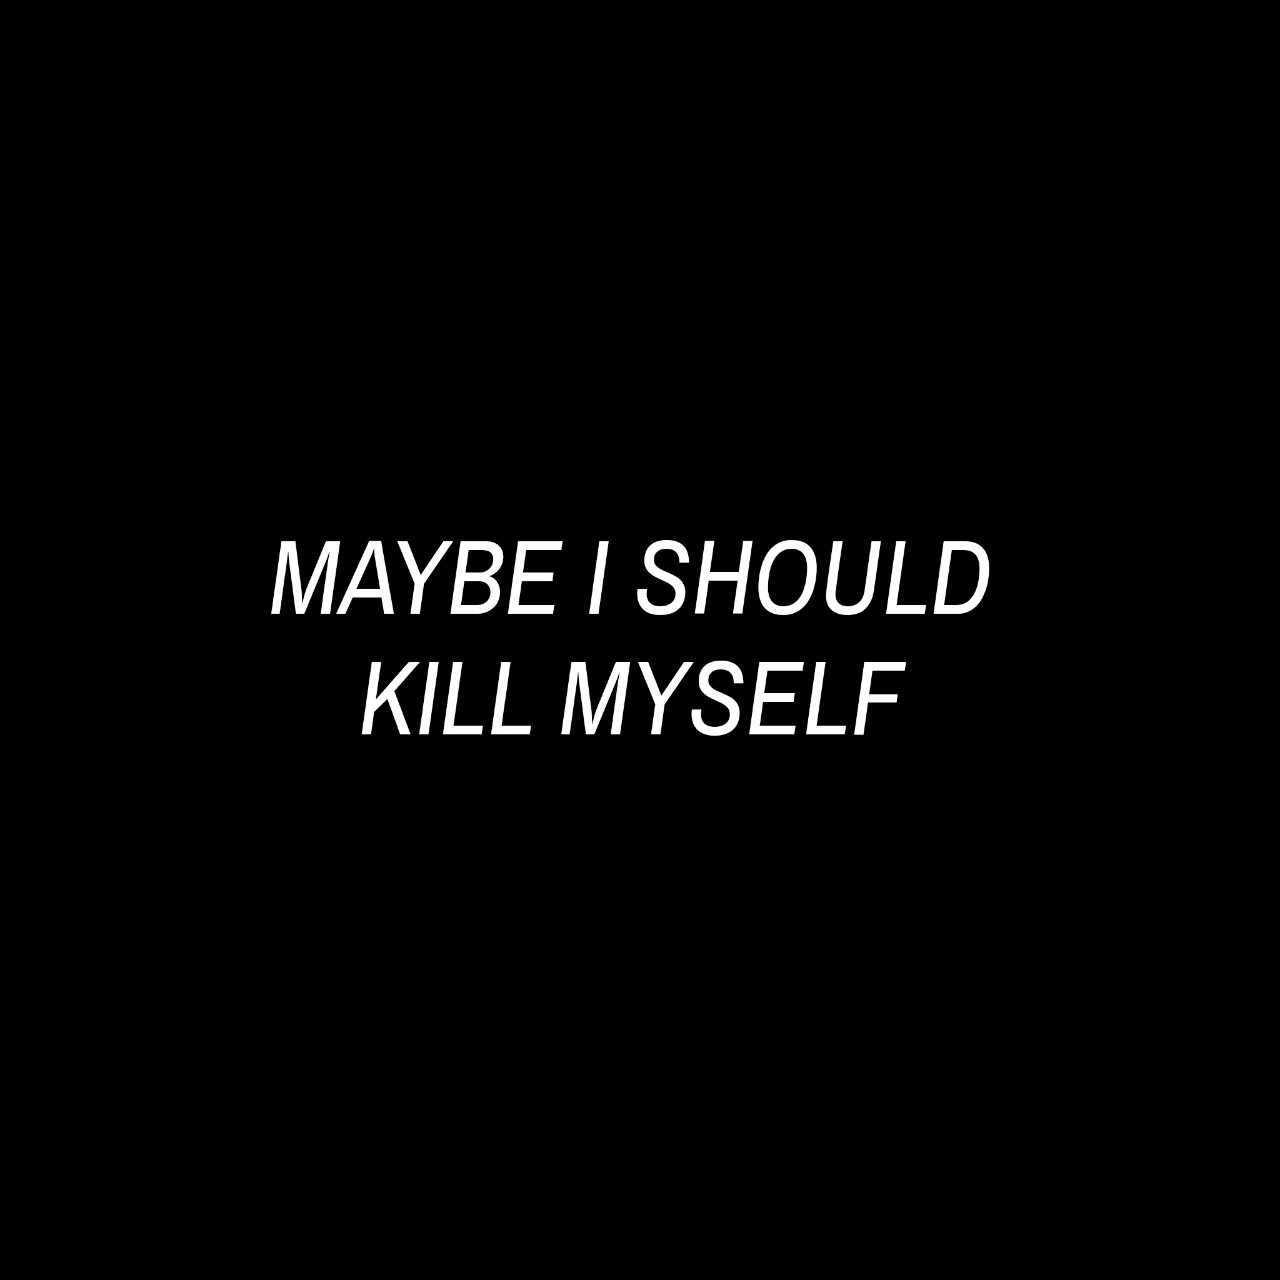 Quotes About Depression And Suicide: Quotes Self Harm Youtube